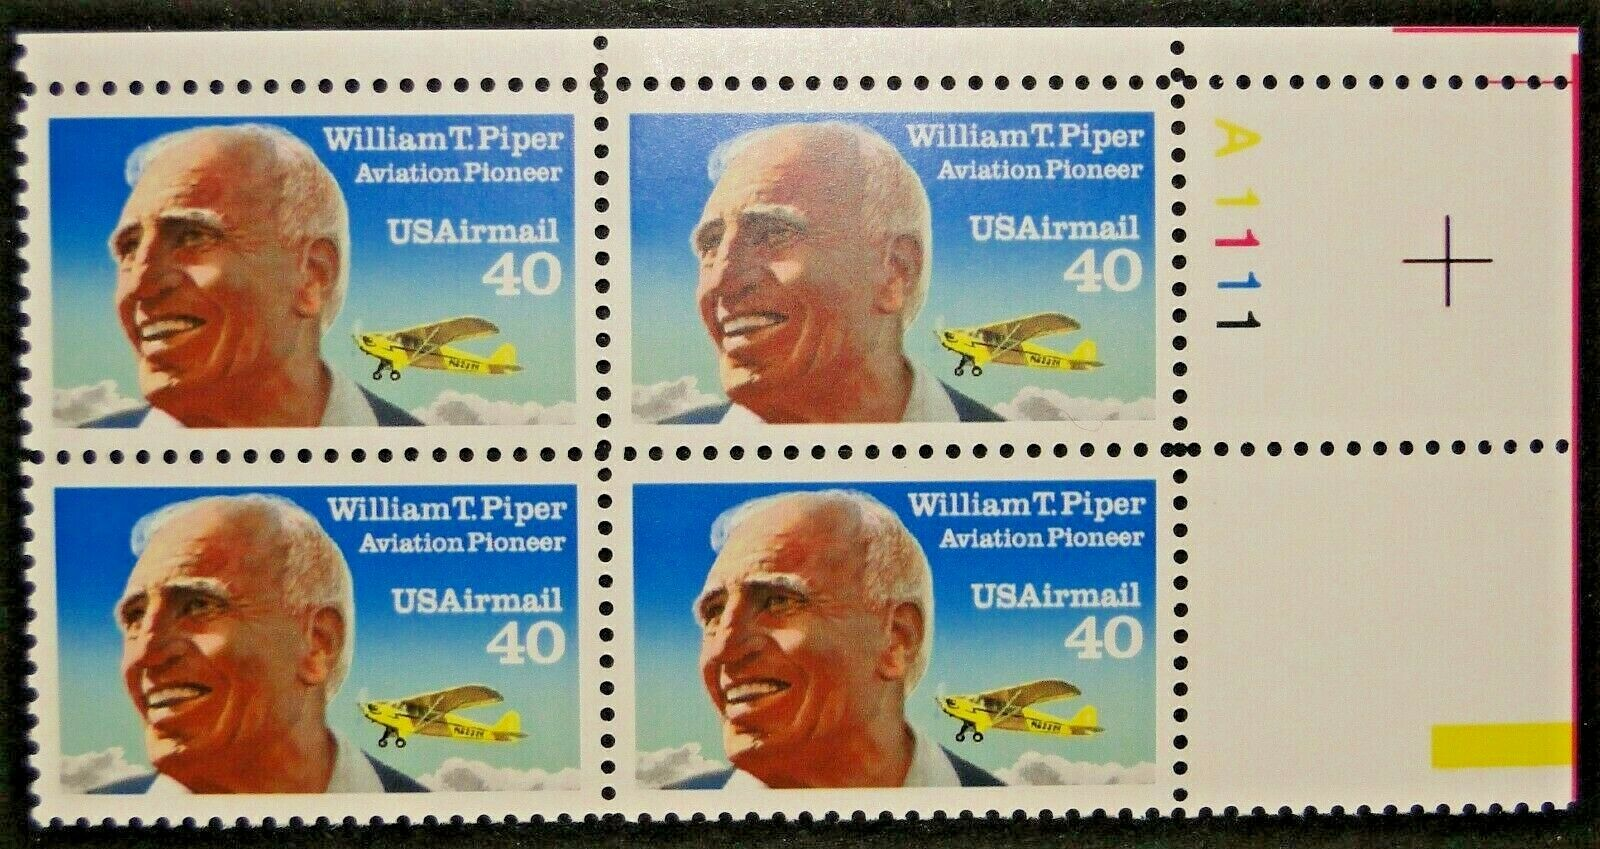 "Scott C-129 Plate Block (40 cents) <p> <a href=""/images/USA-Scott-C-129-PB.jpg""><font color=green><b>View the image</a></b></font>"